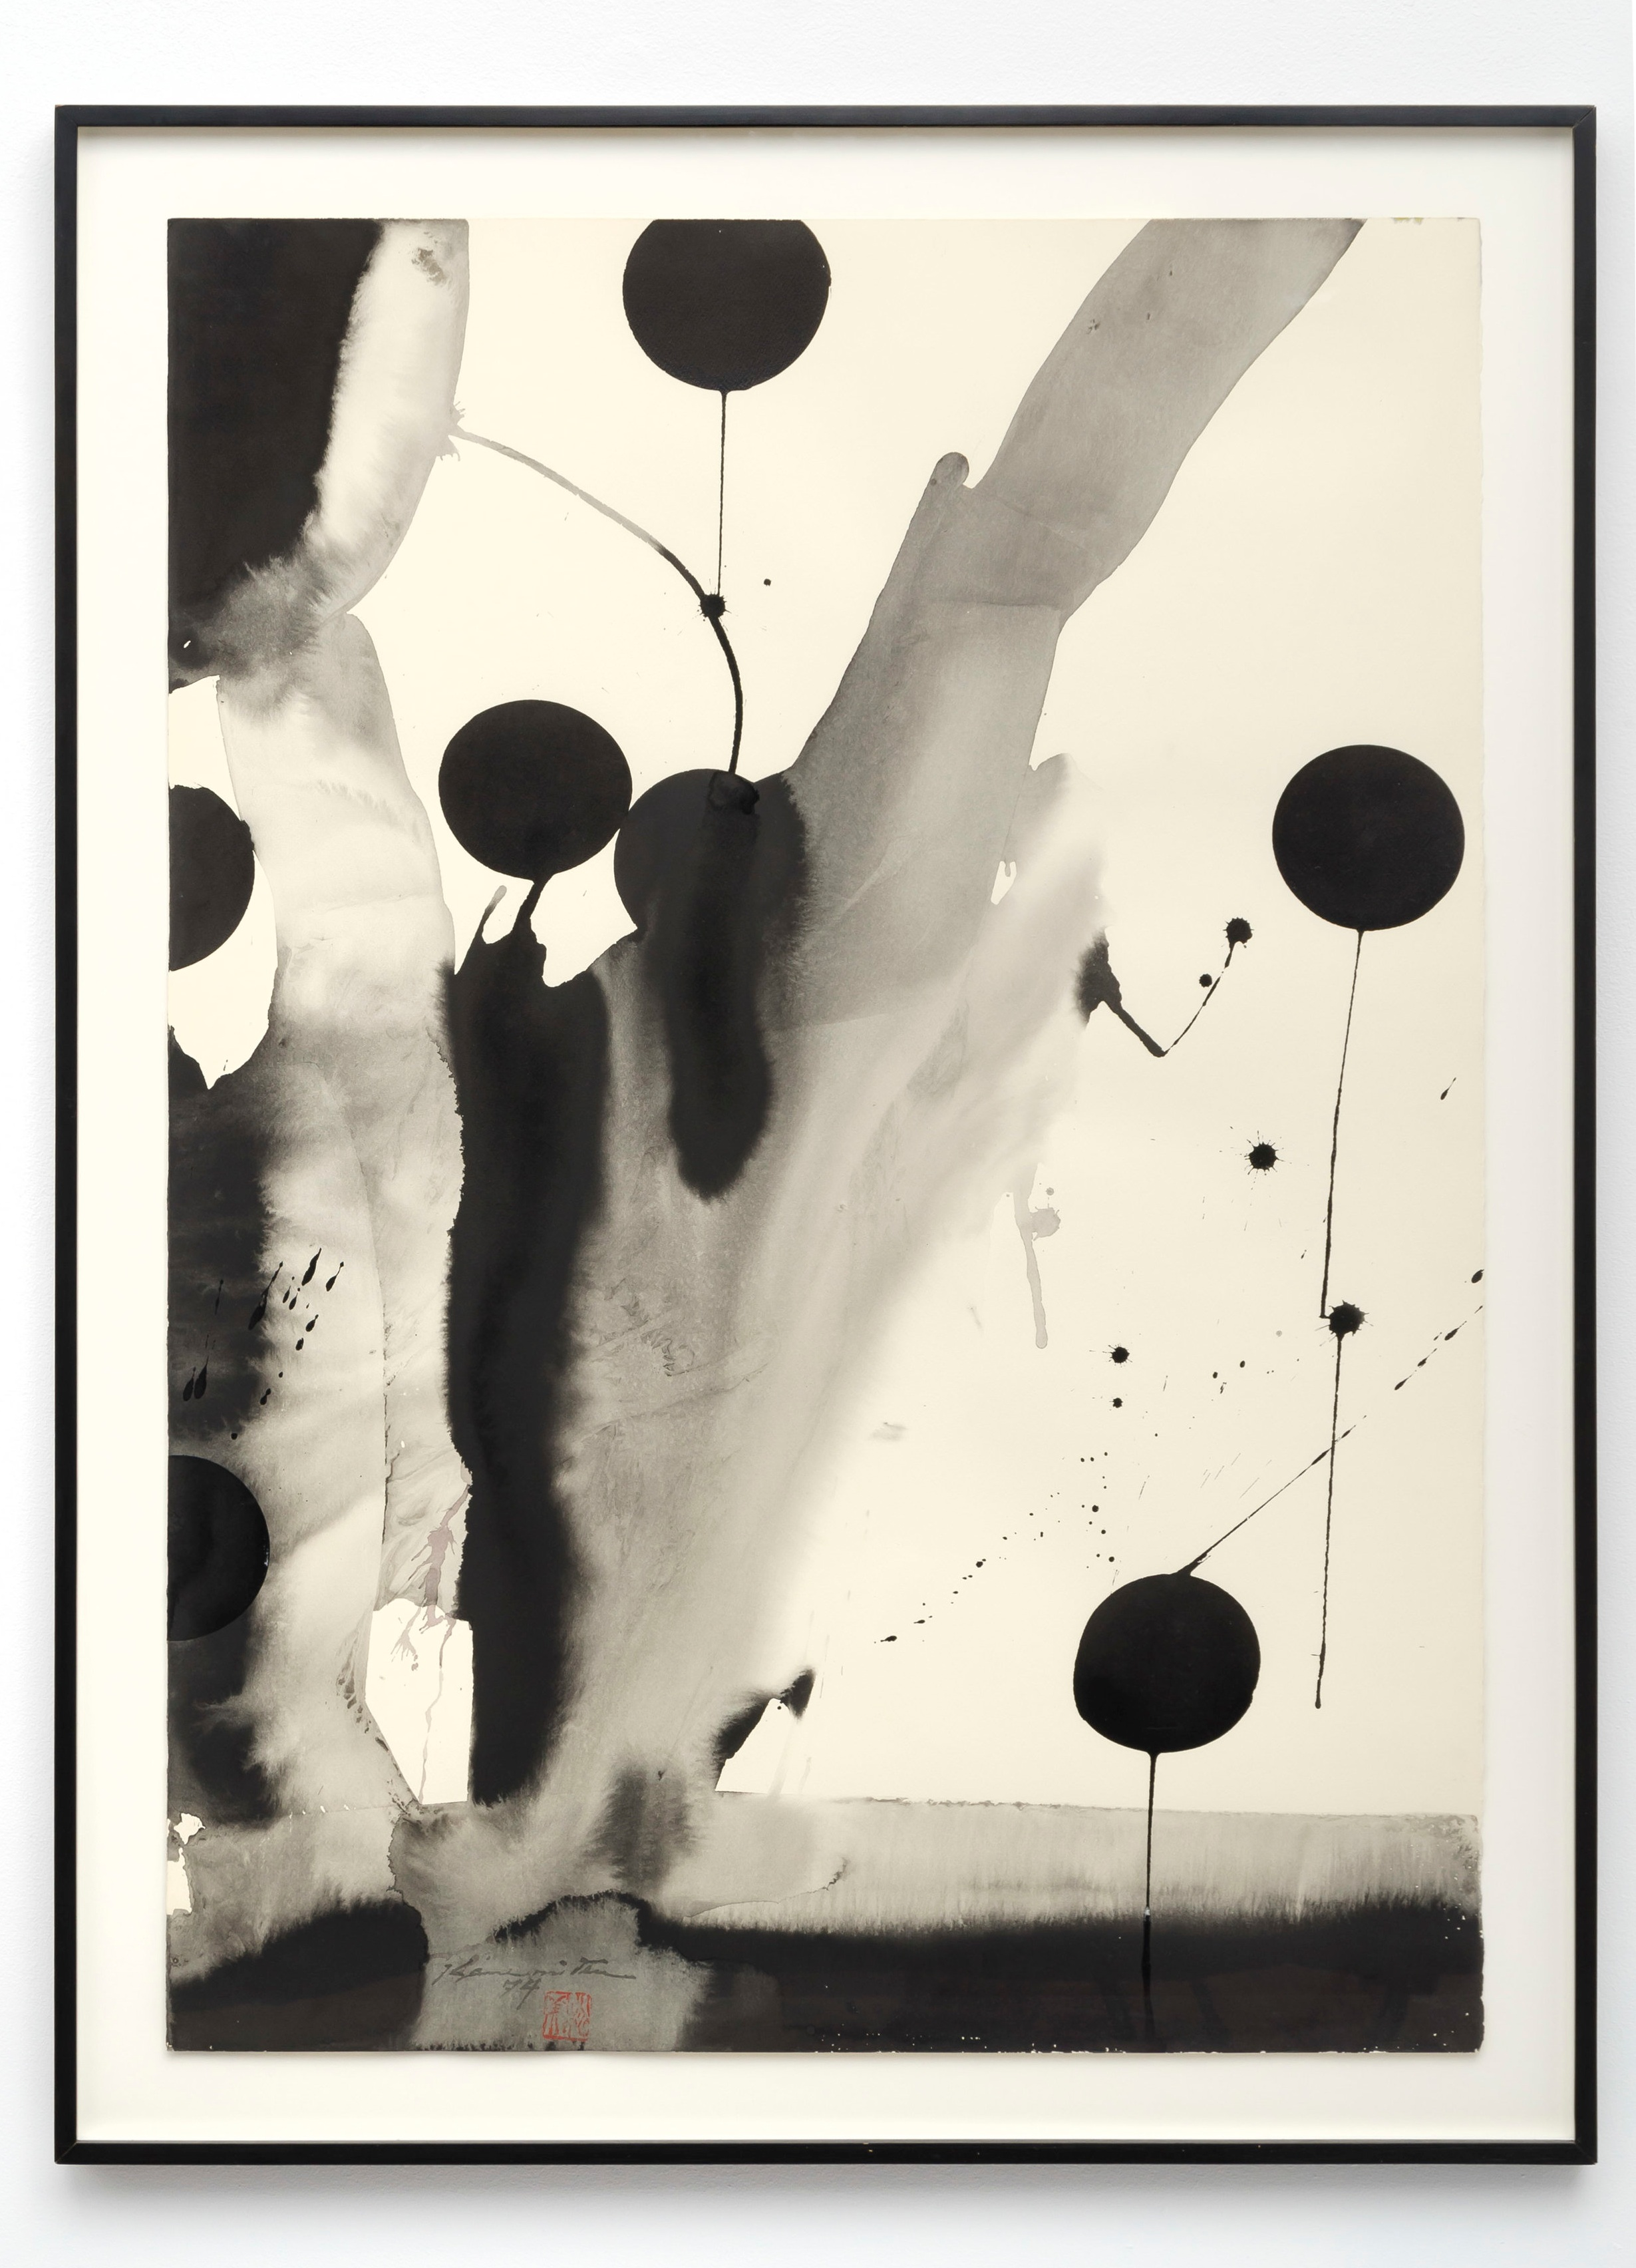 Untitled #7450   1974  sumi ink on paper  44.5 x 32.75 inches, 113 x 83.2 centimeters